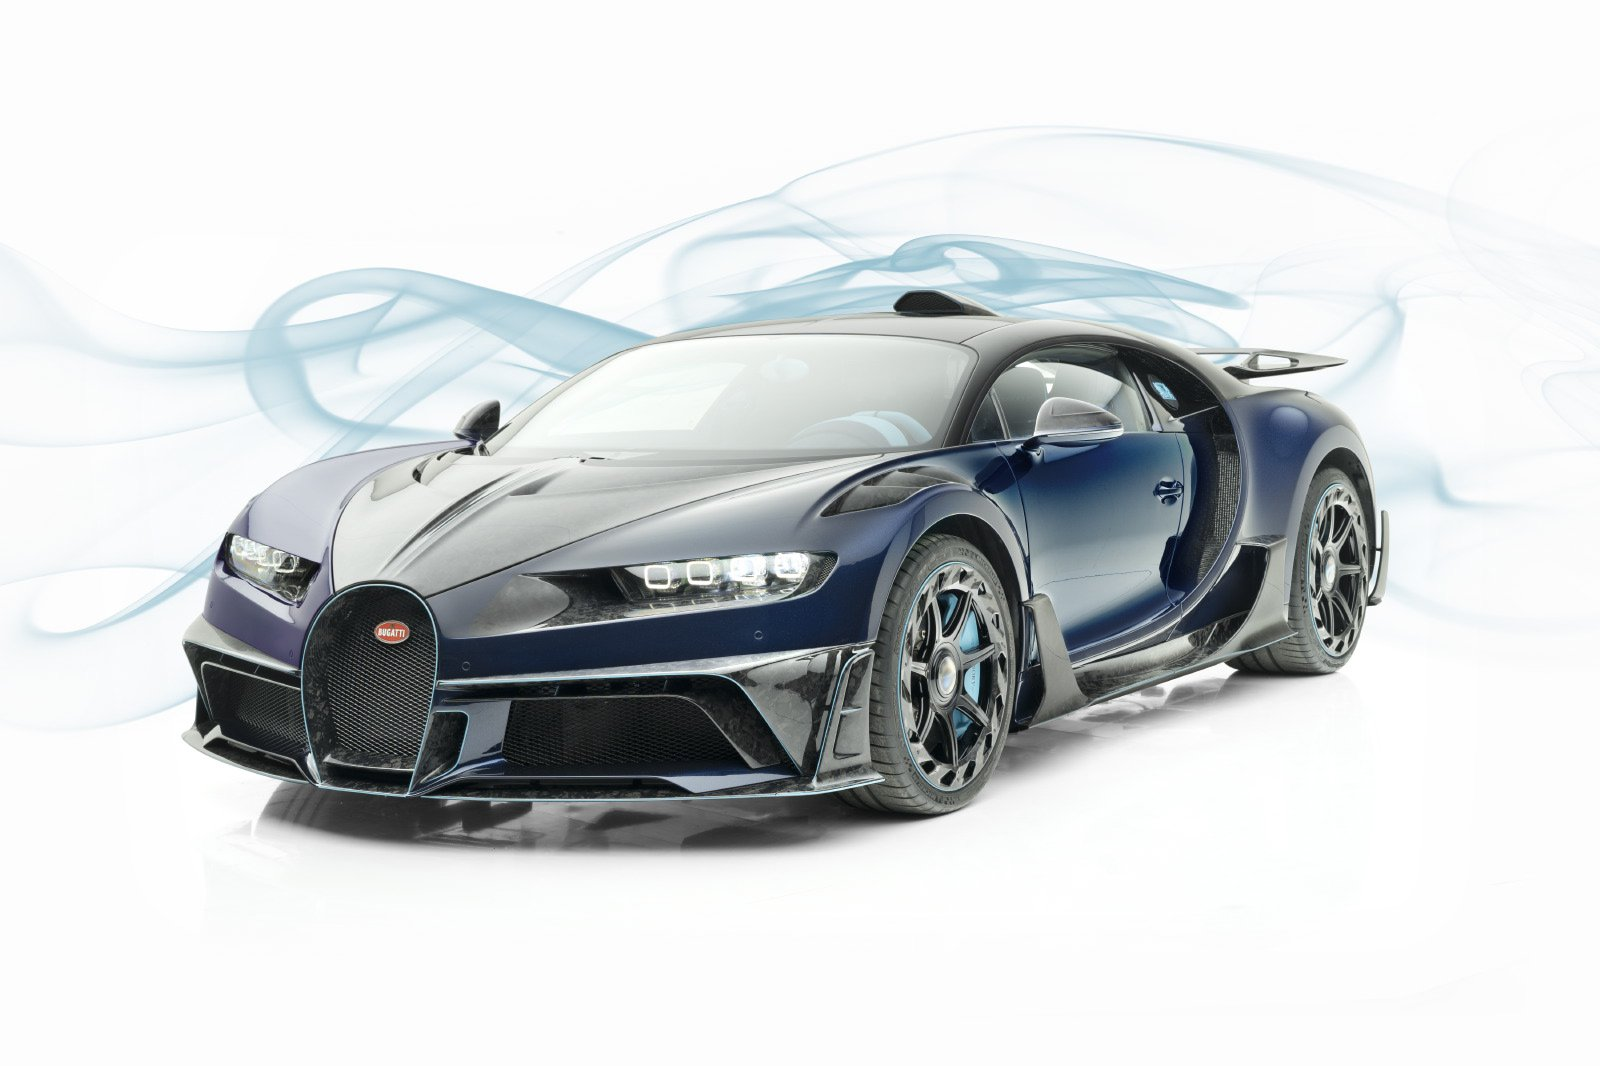 Called the Mansory Centuria, it wears an ultra-aggressive body kit from the titular tuning shop, made of pressed carbon fiber